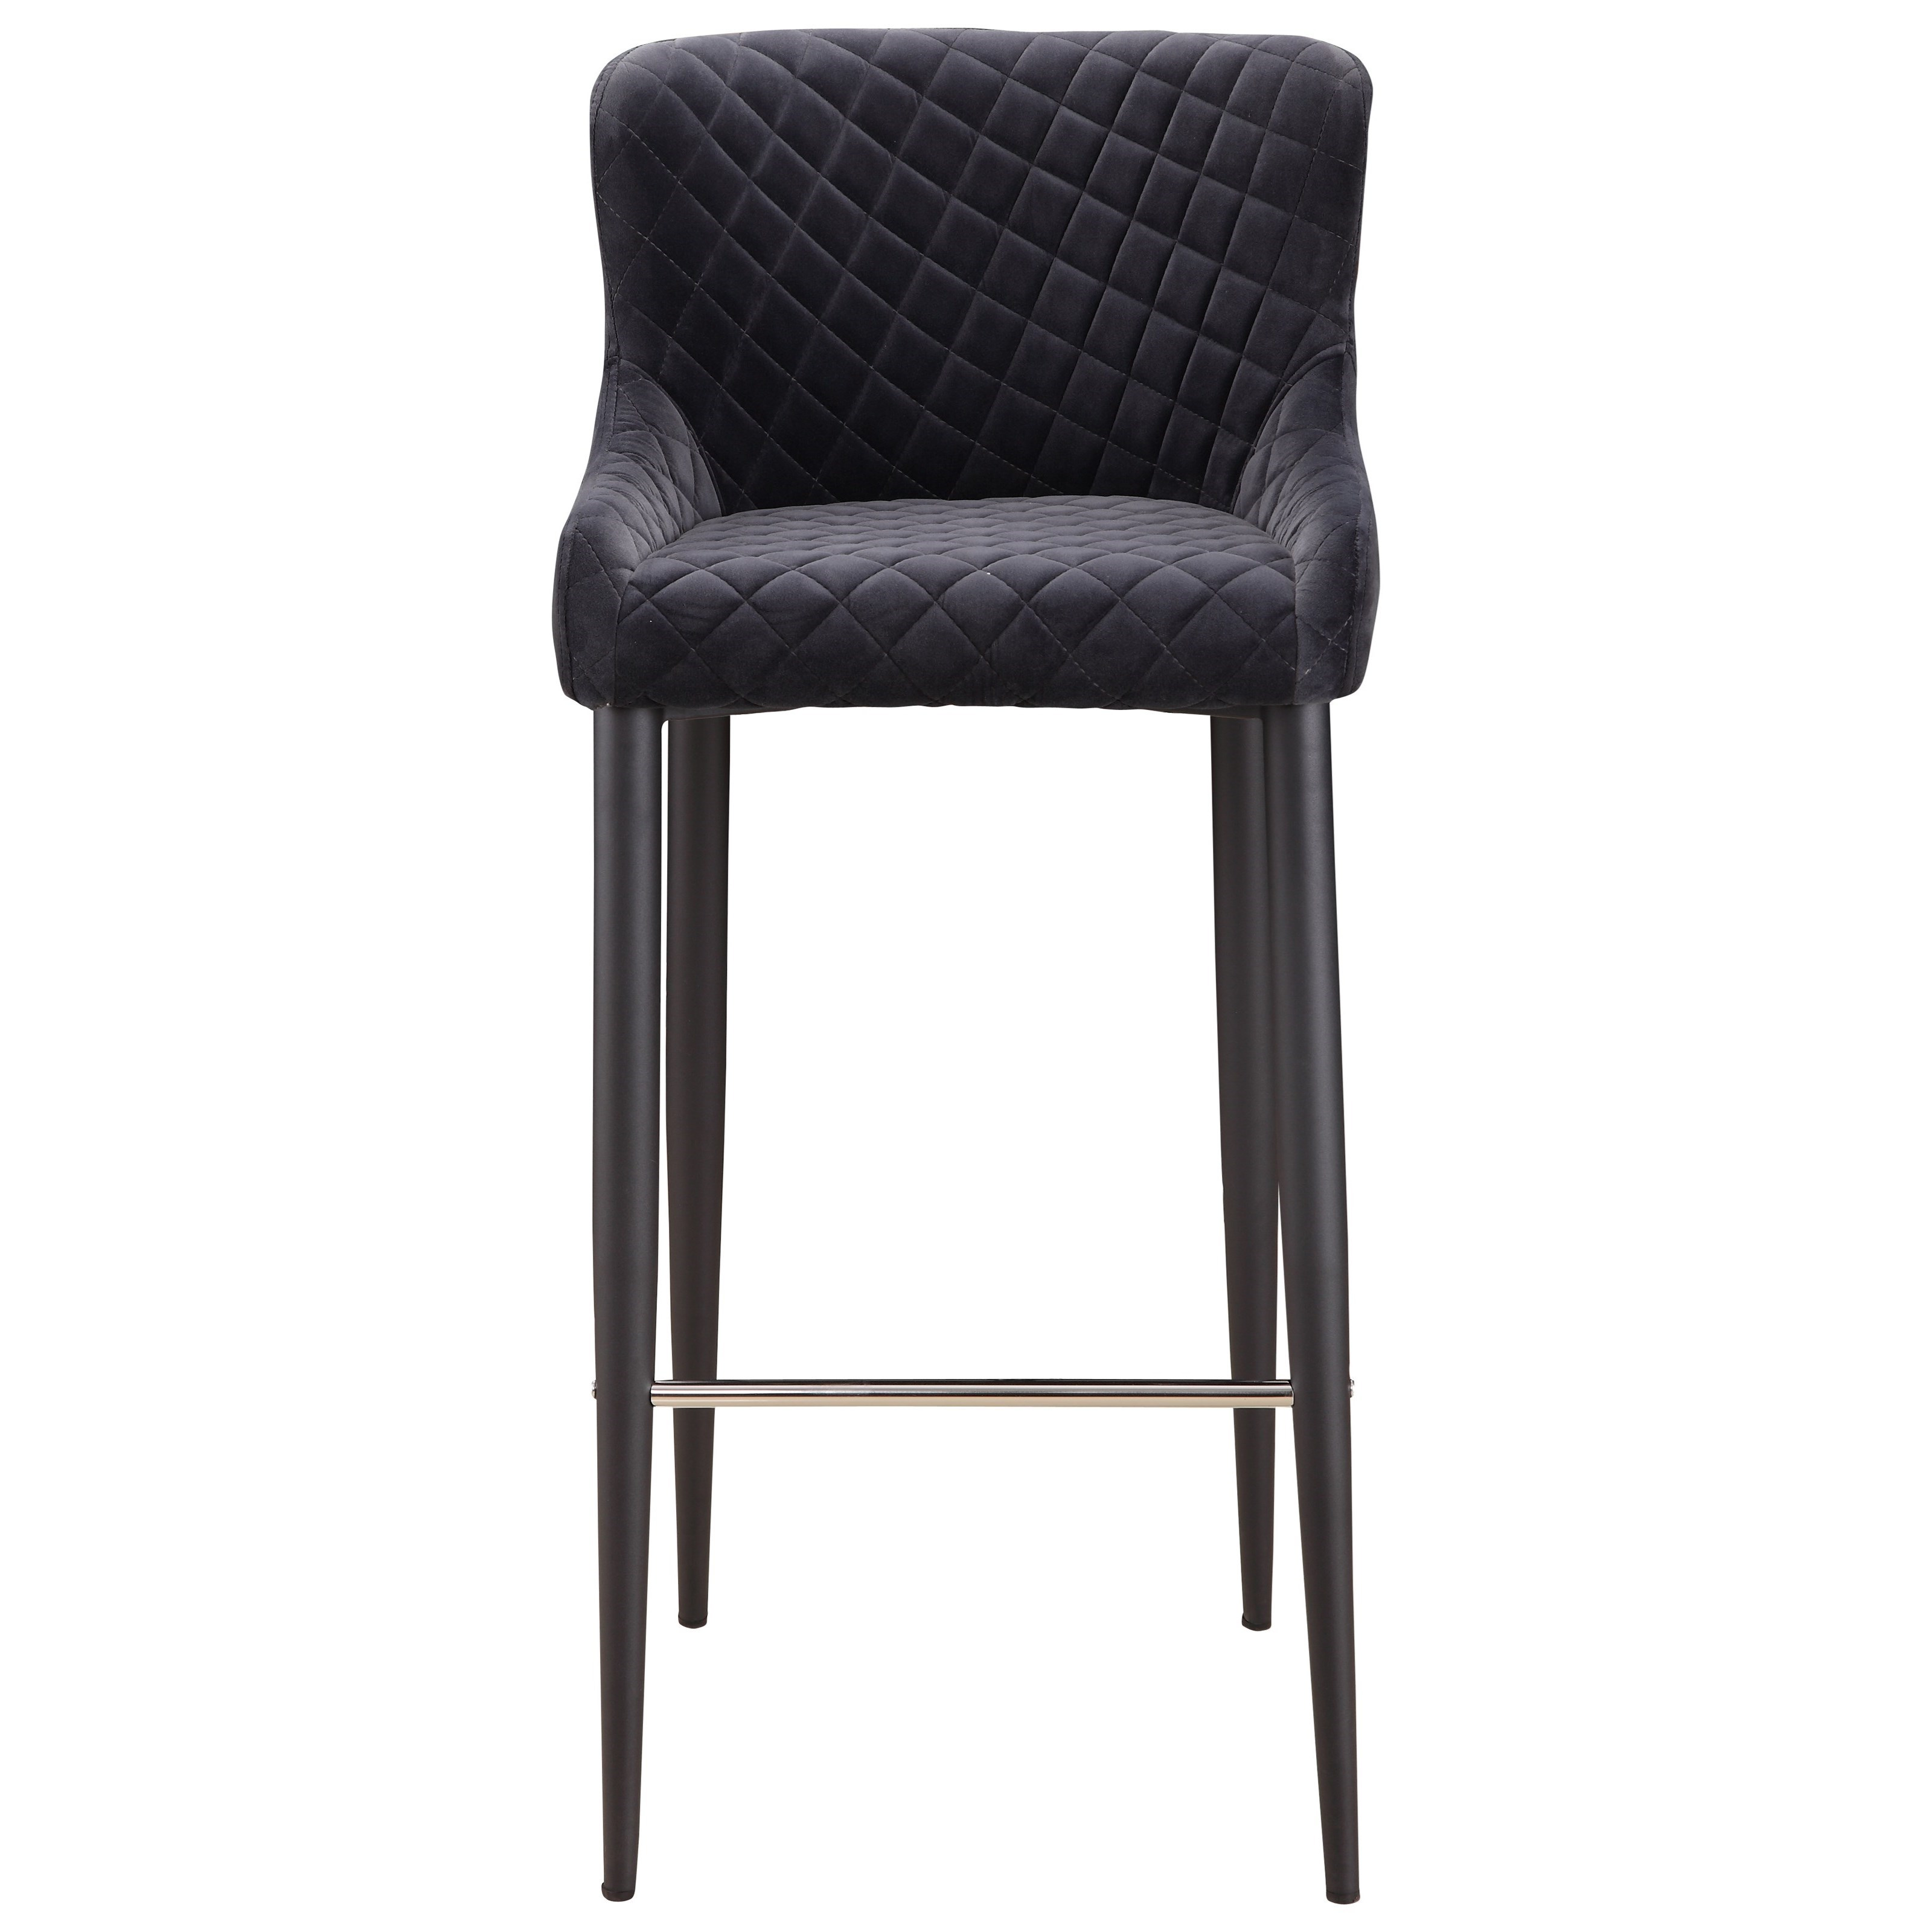 Etta Bar Stool by Moe's Home Collection at Wilson's Furniture